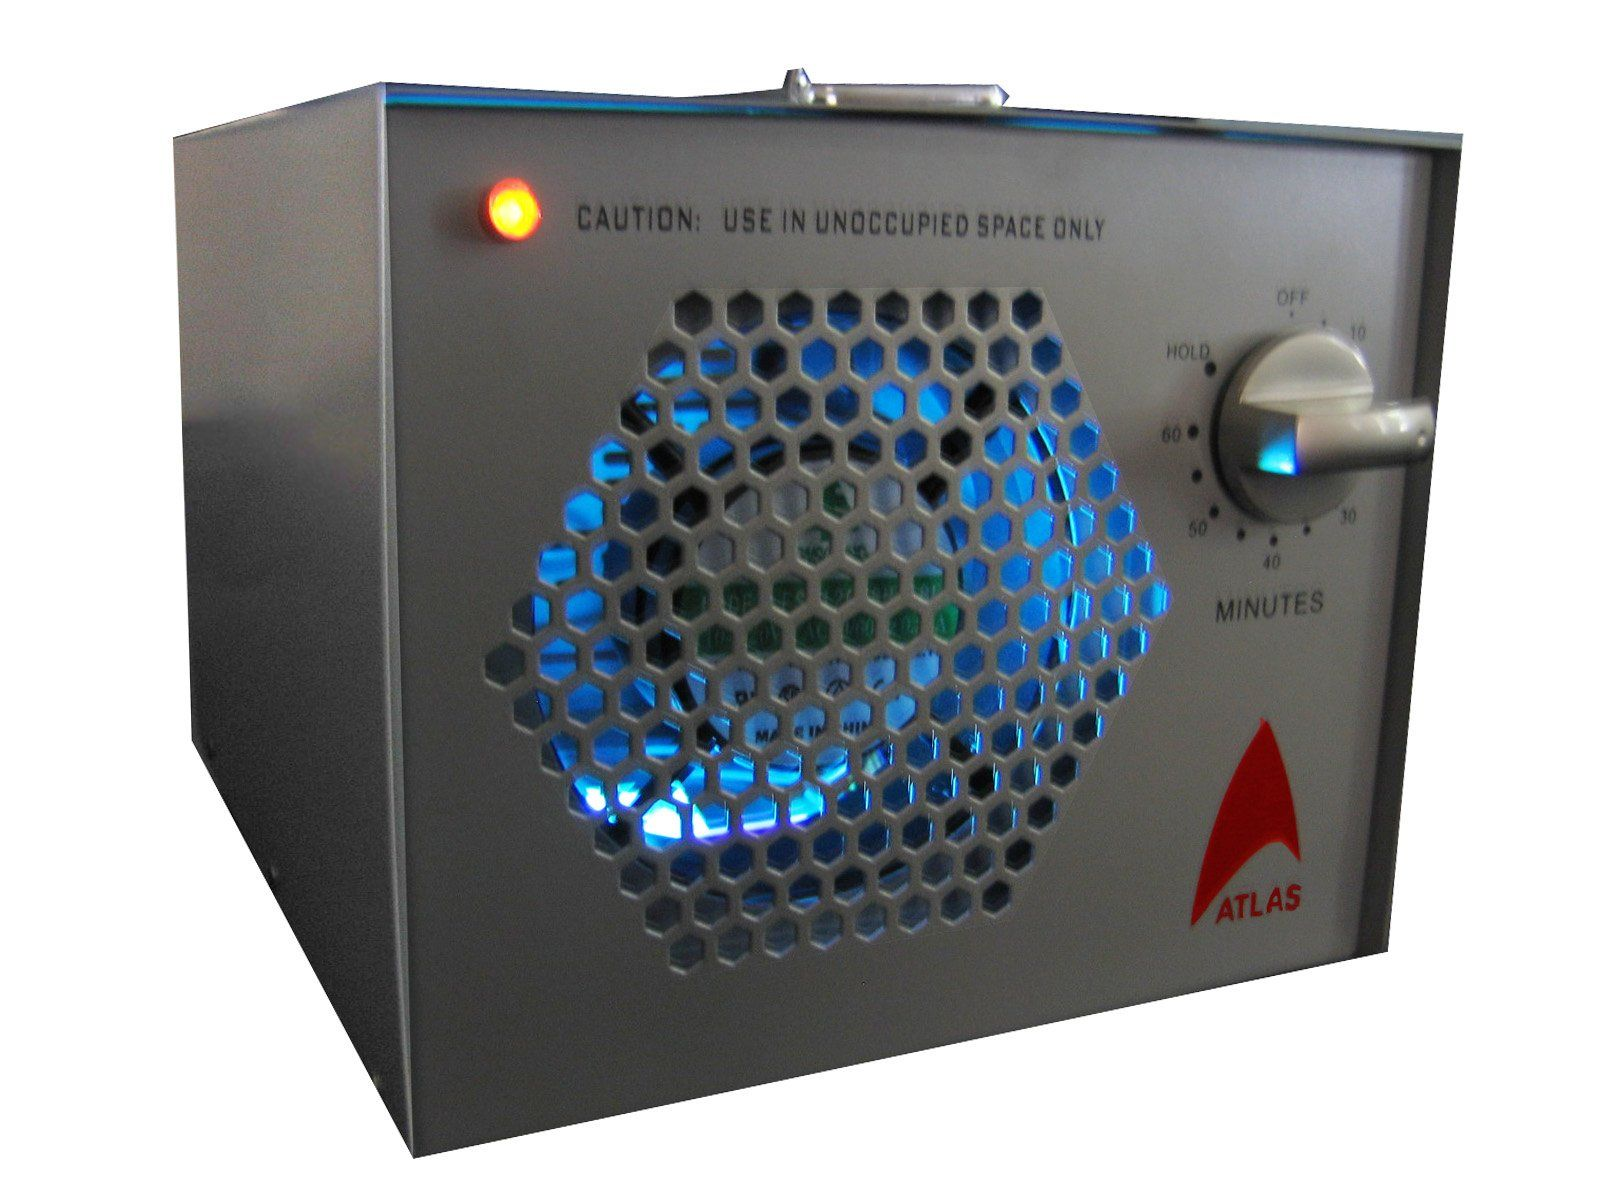 Commercial Ozone Air Purifier and it comes with 3 yrs